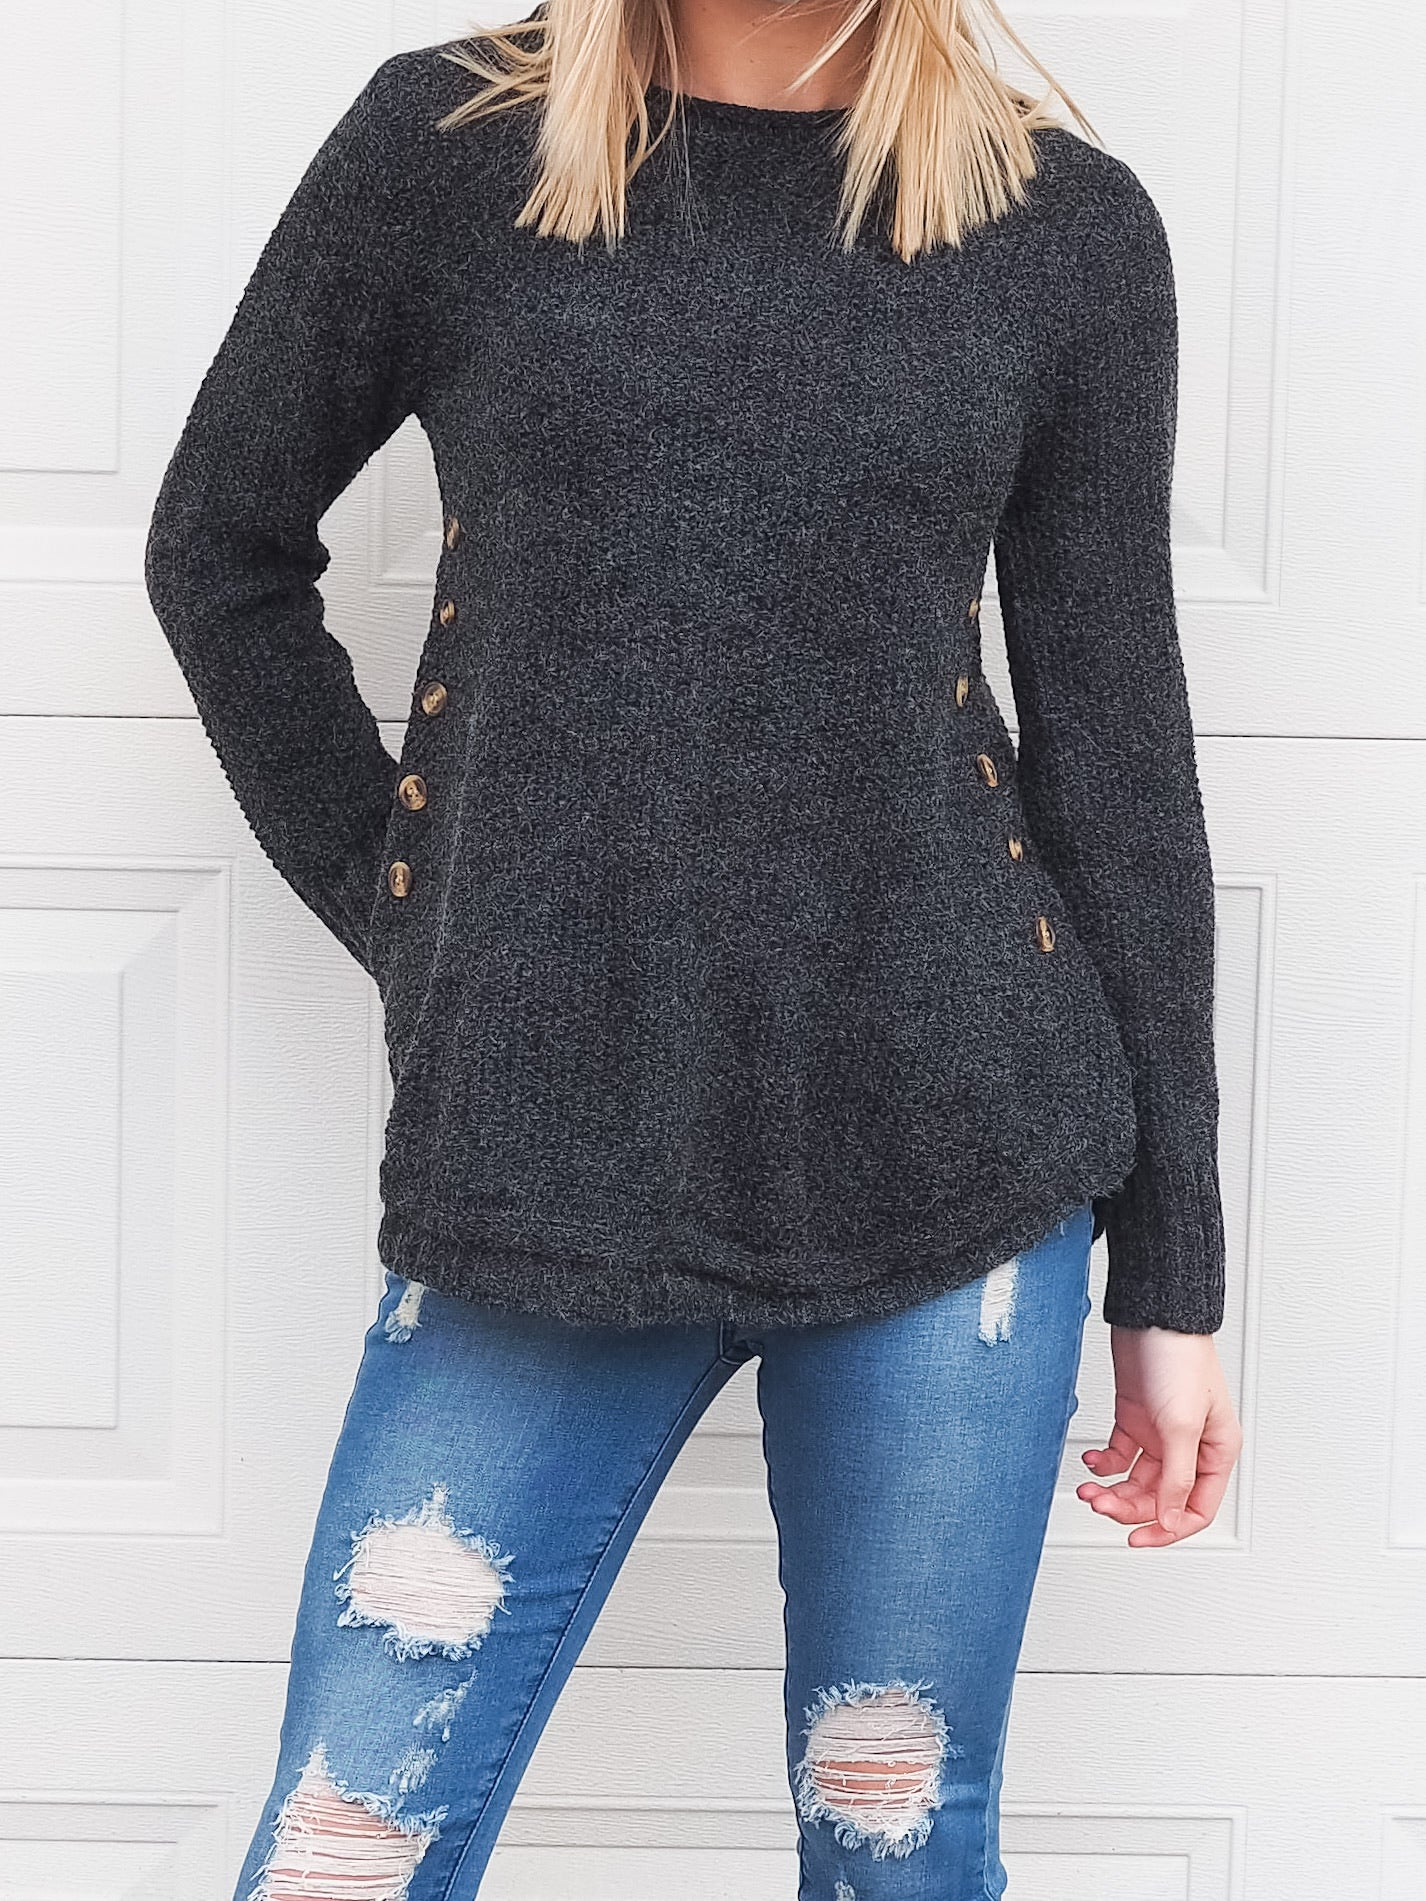 Kennedy Knit Charcoal - Was $49.95